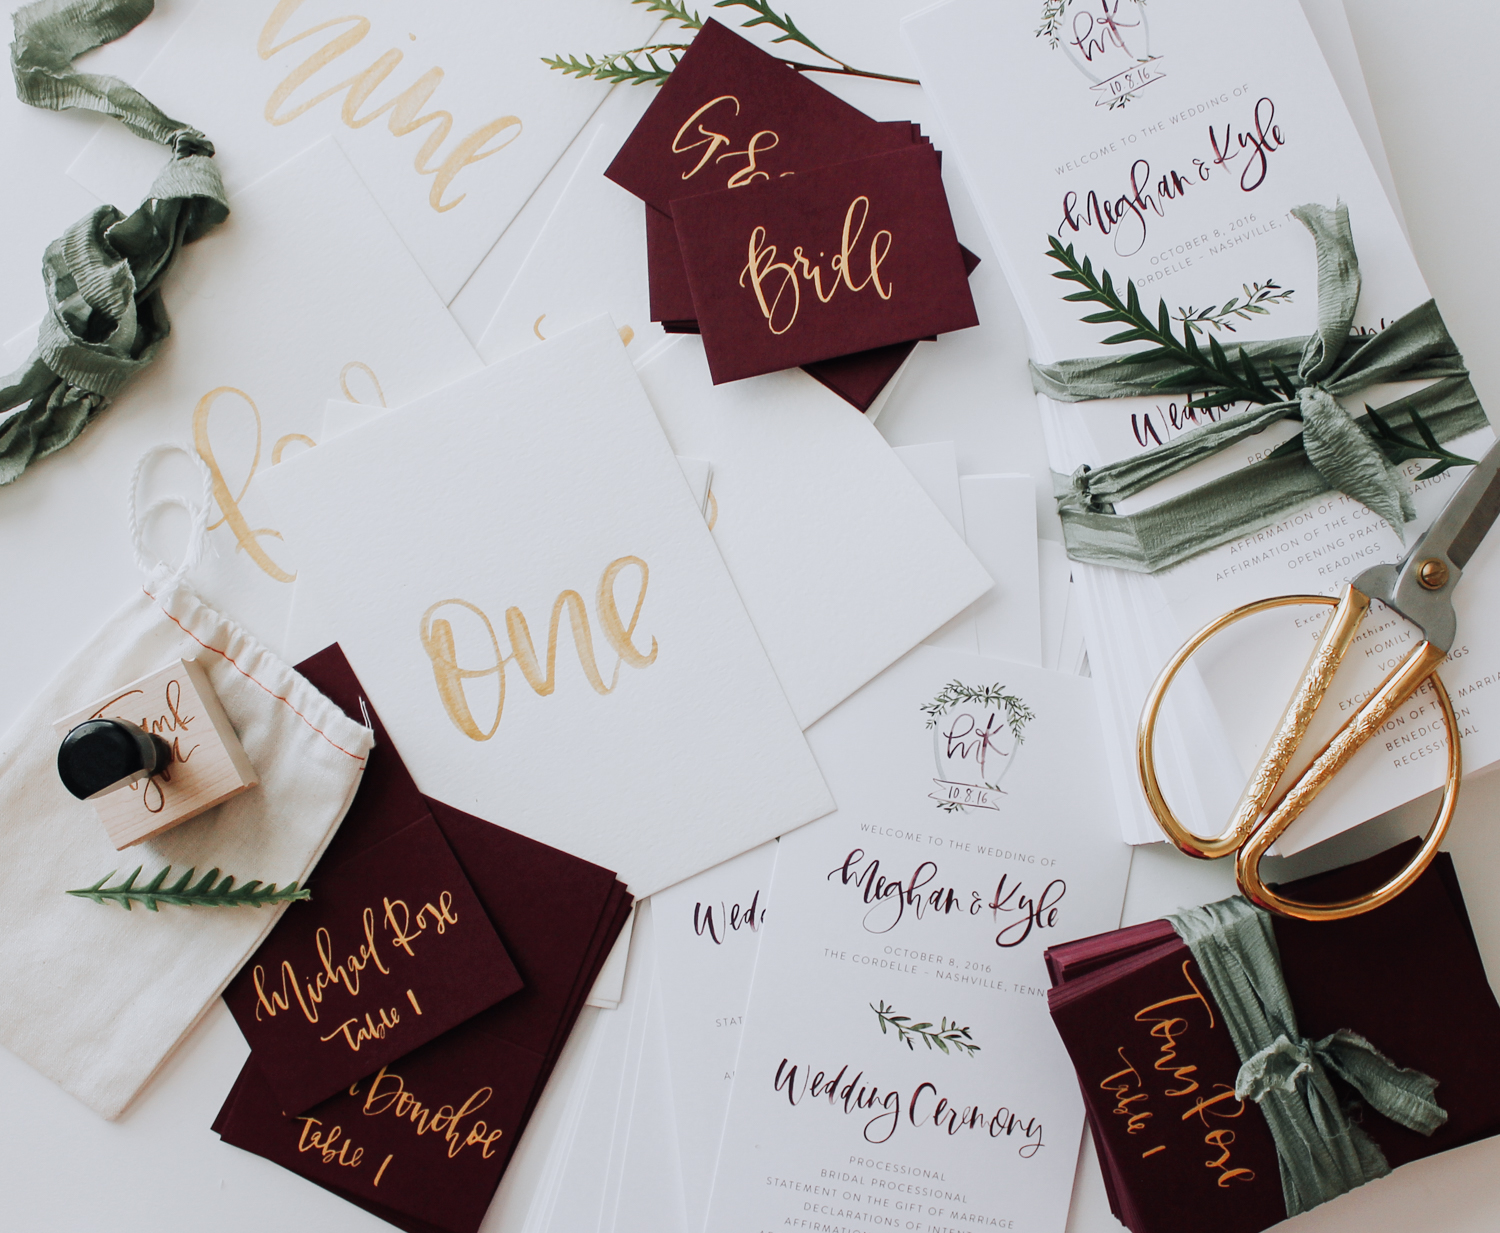 Day of Stationery | A Fabulous Fete